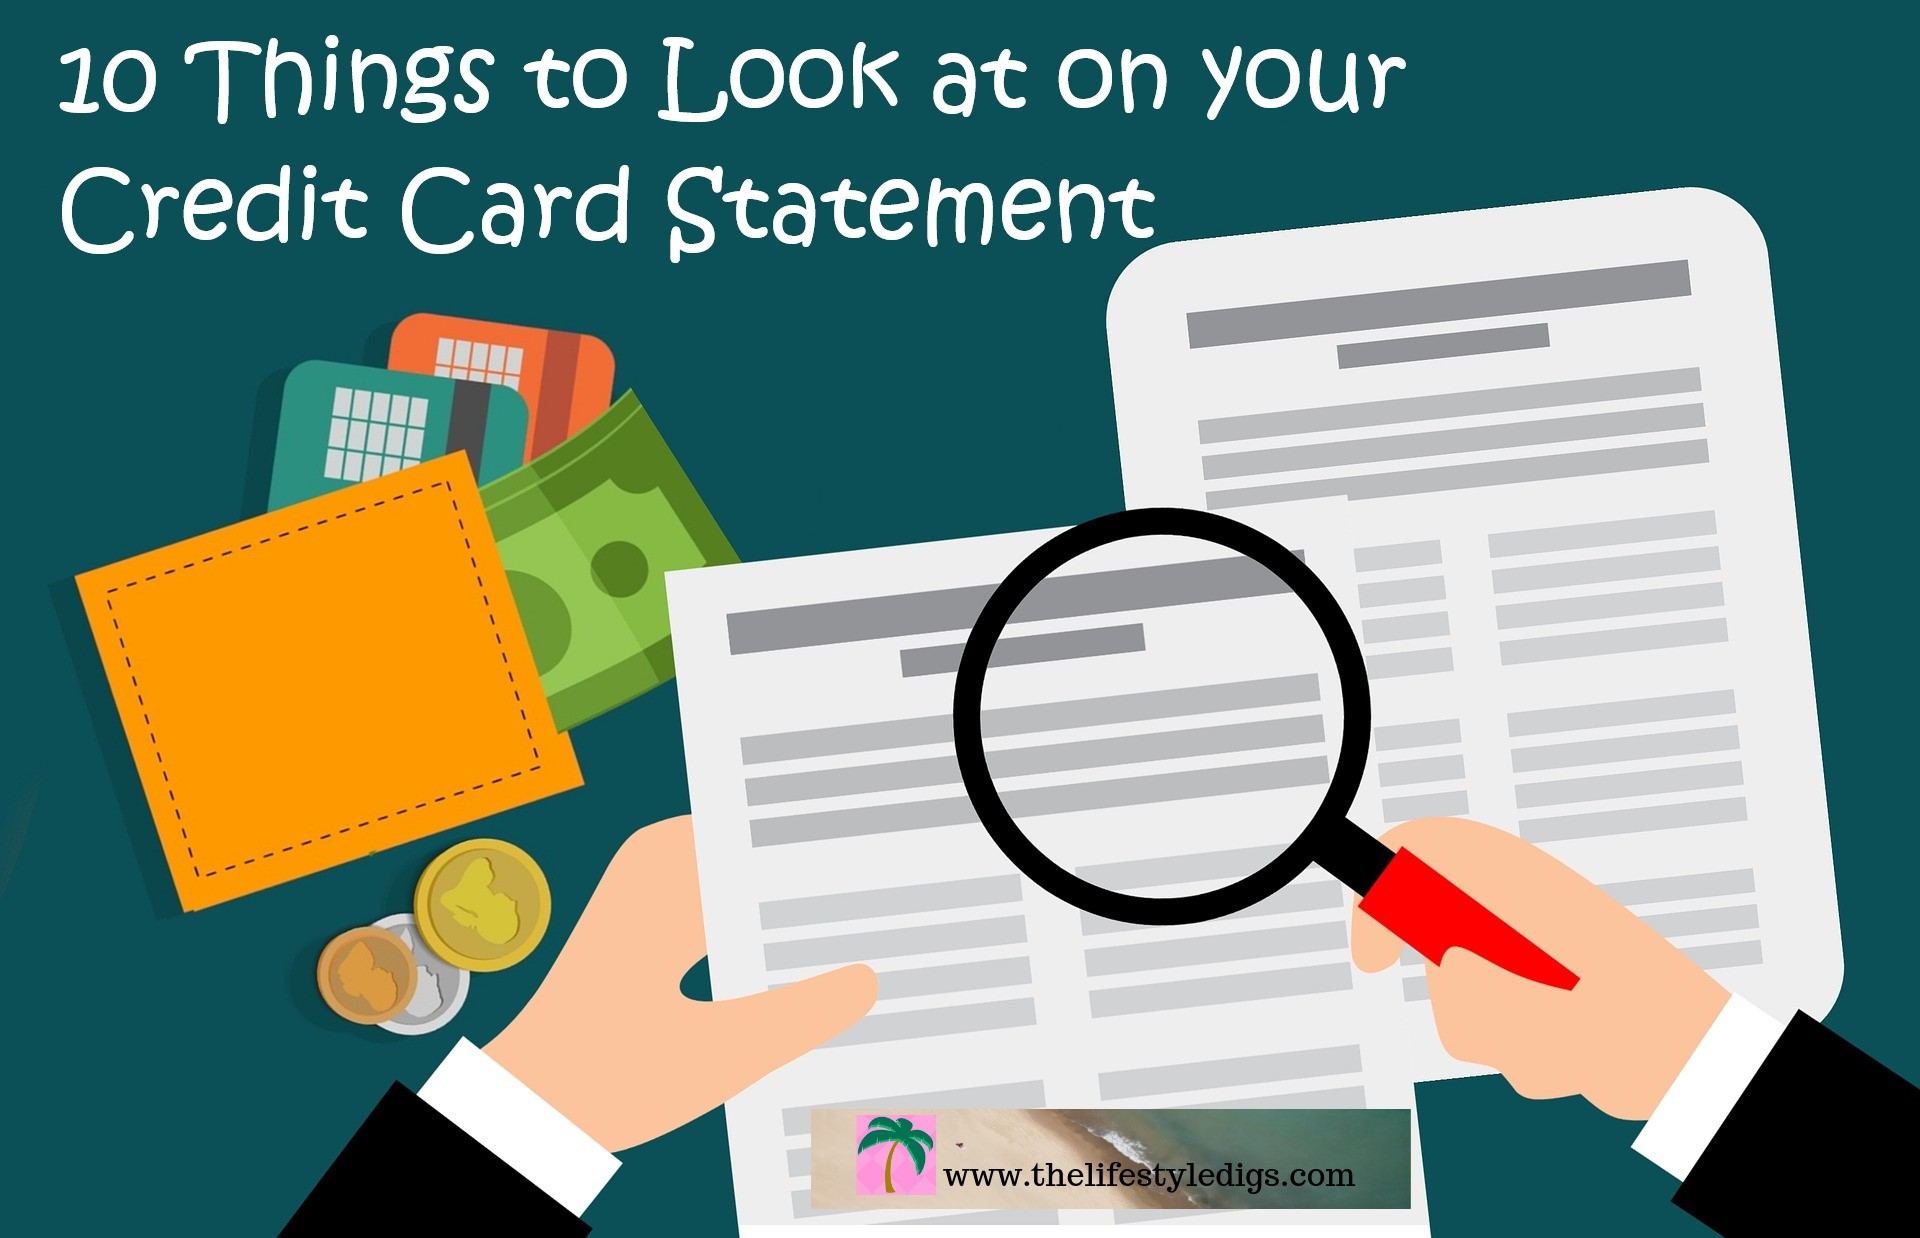 10 Things to Look at on your Credit Card Statement